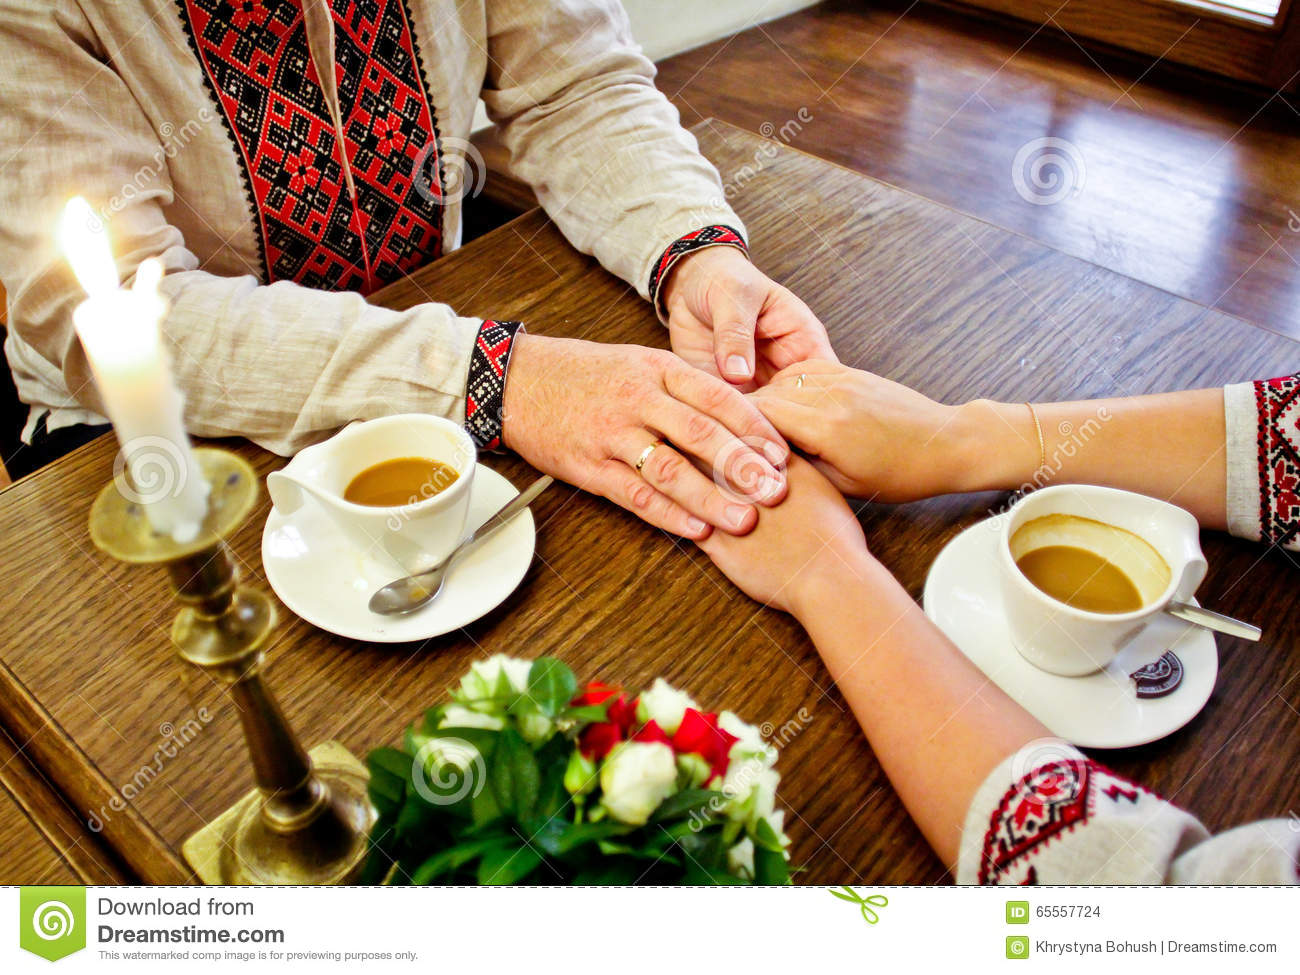 Marriage  Gentle Touch Of Hands Stock Photo - Image of cosiness